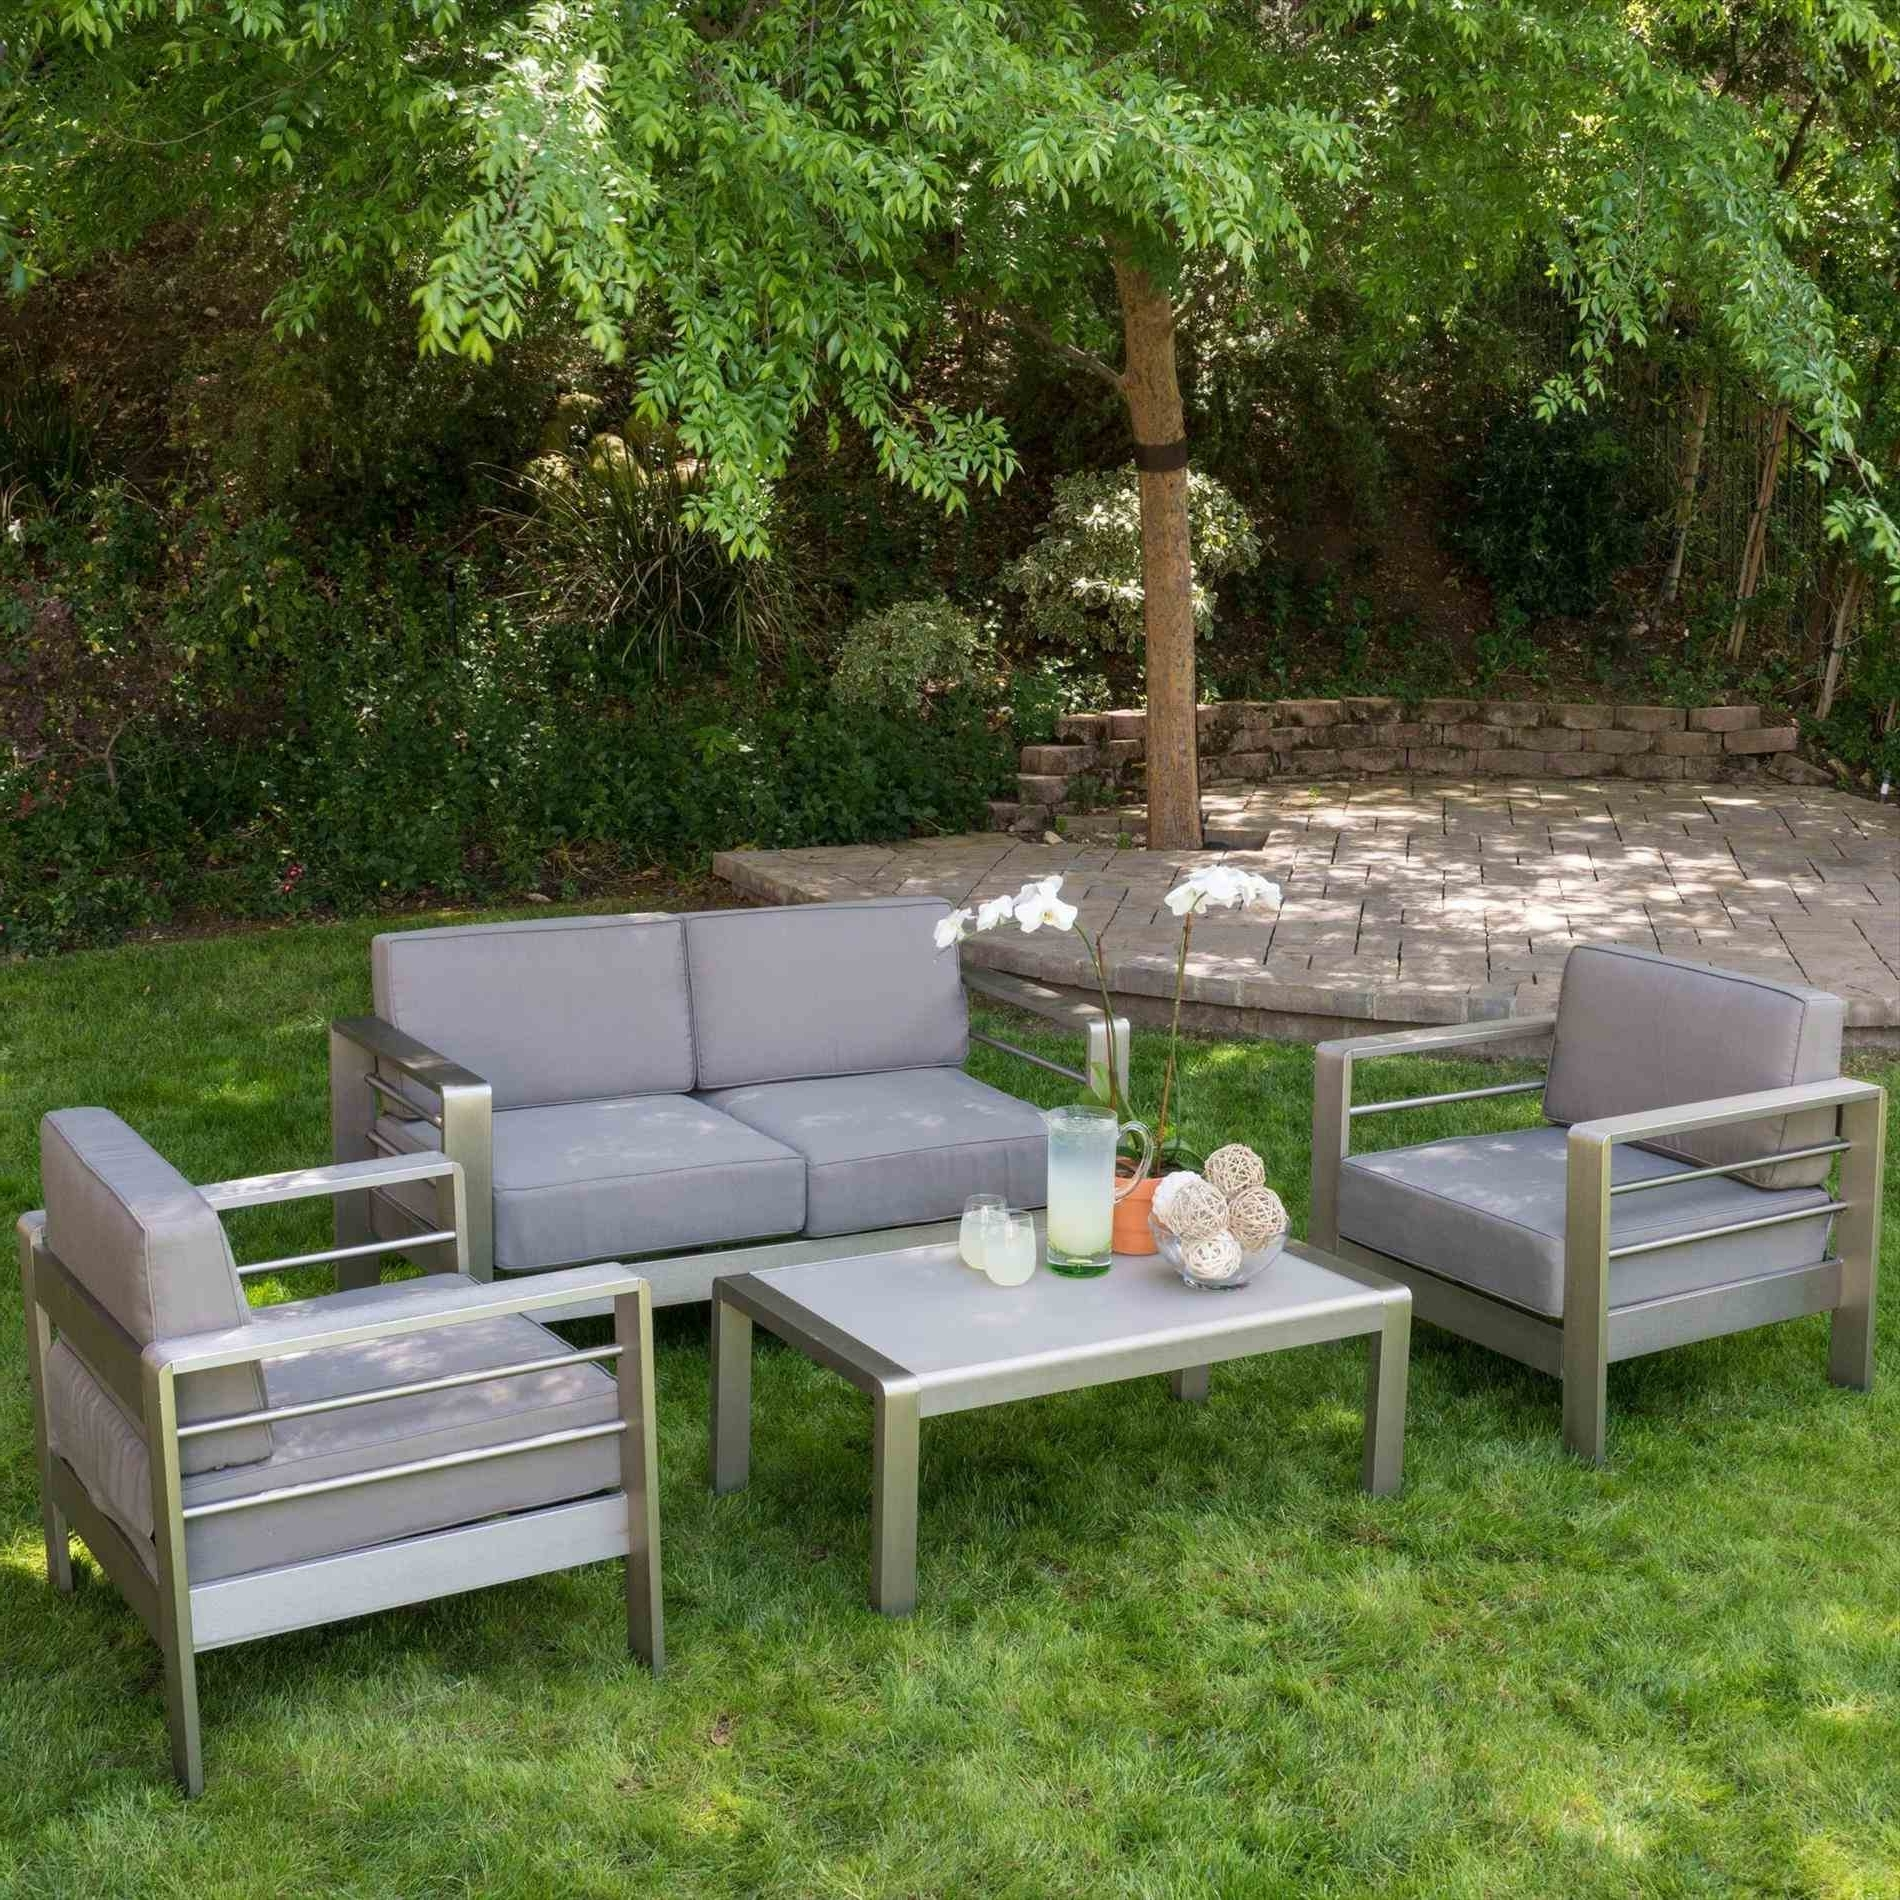 Most Popular Patio Conversation Sets Under 200 Regarding Under 200 Outdoor Sectional Clearance Conversation Sets Furniture (View 9 of 20)